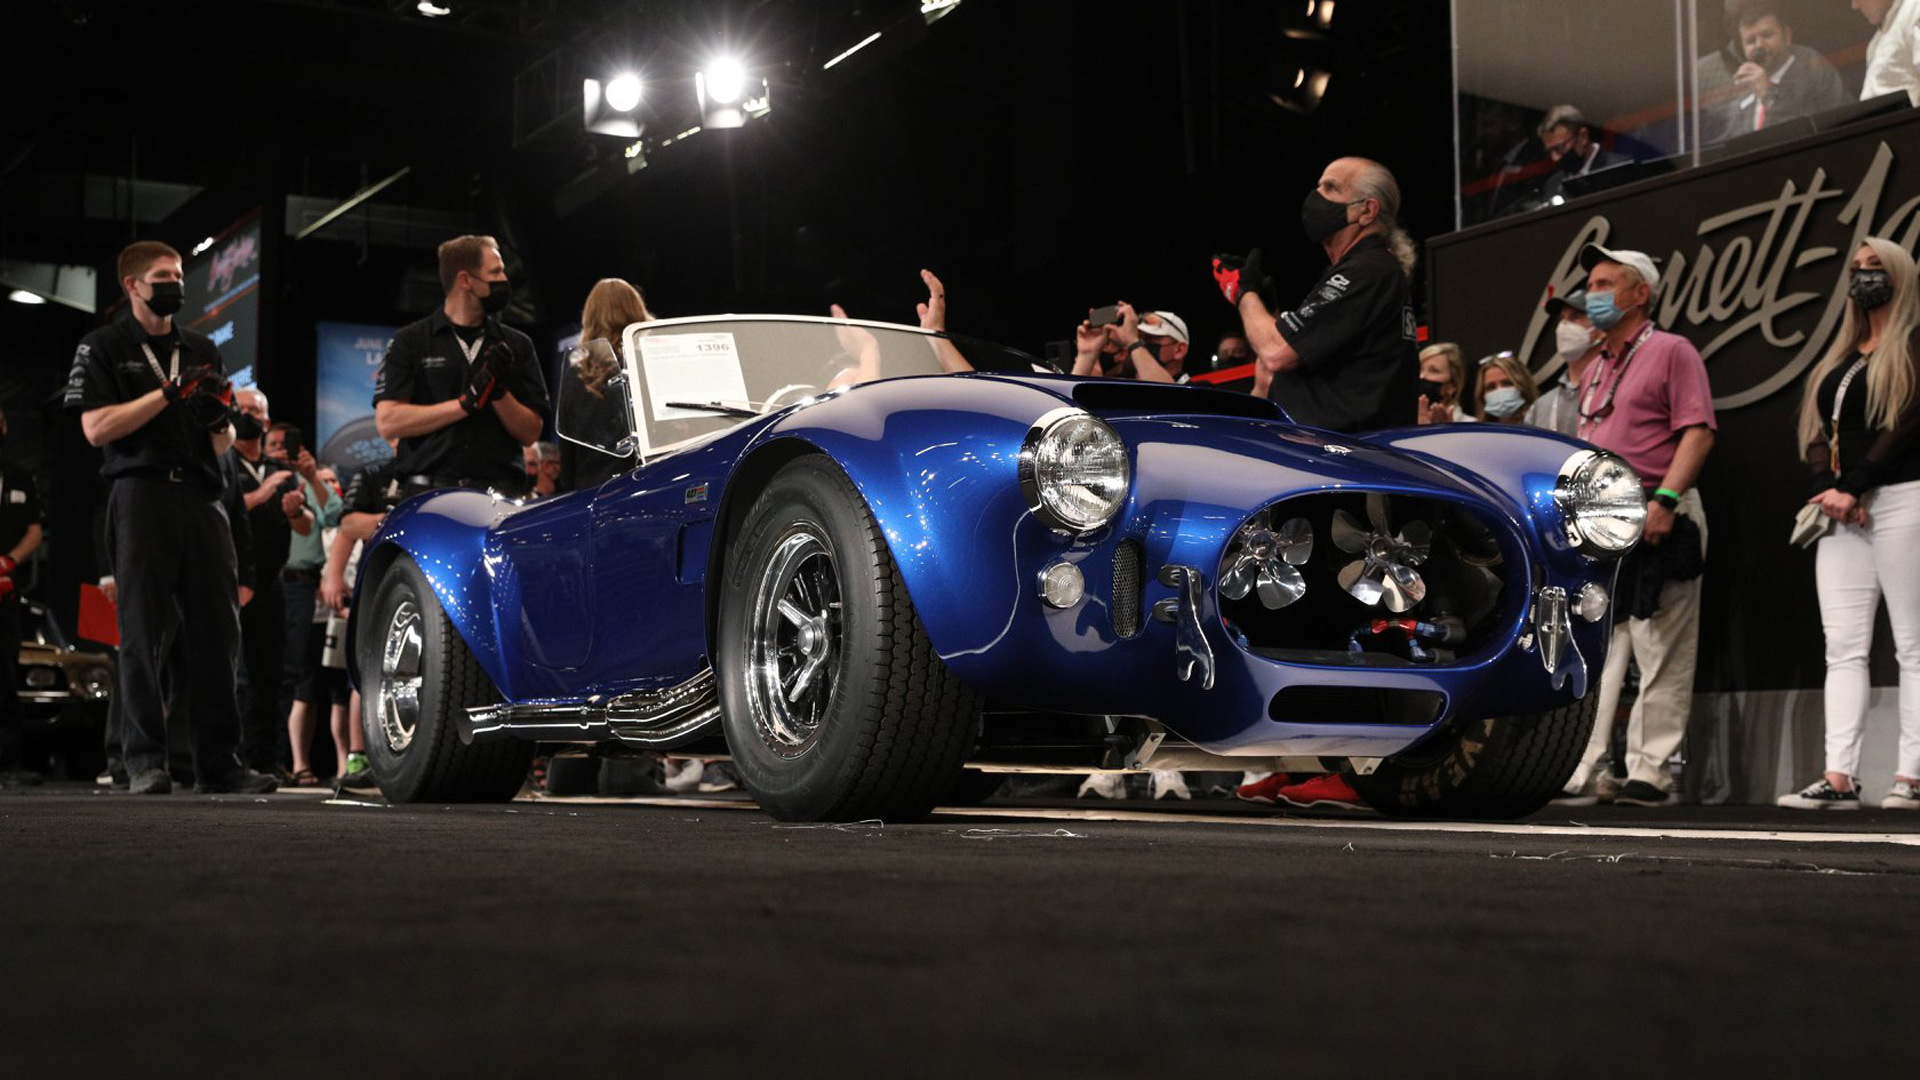 1966 Shelby Cobra 427 Super Snake (chassis no. CSX3015) once owned by Carroll Shelby